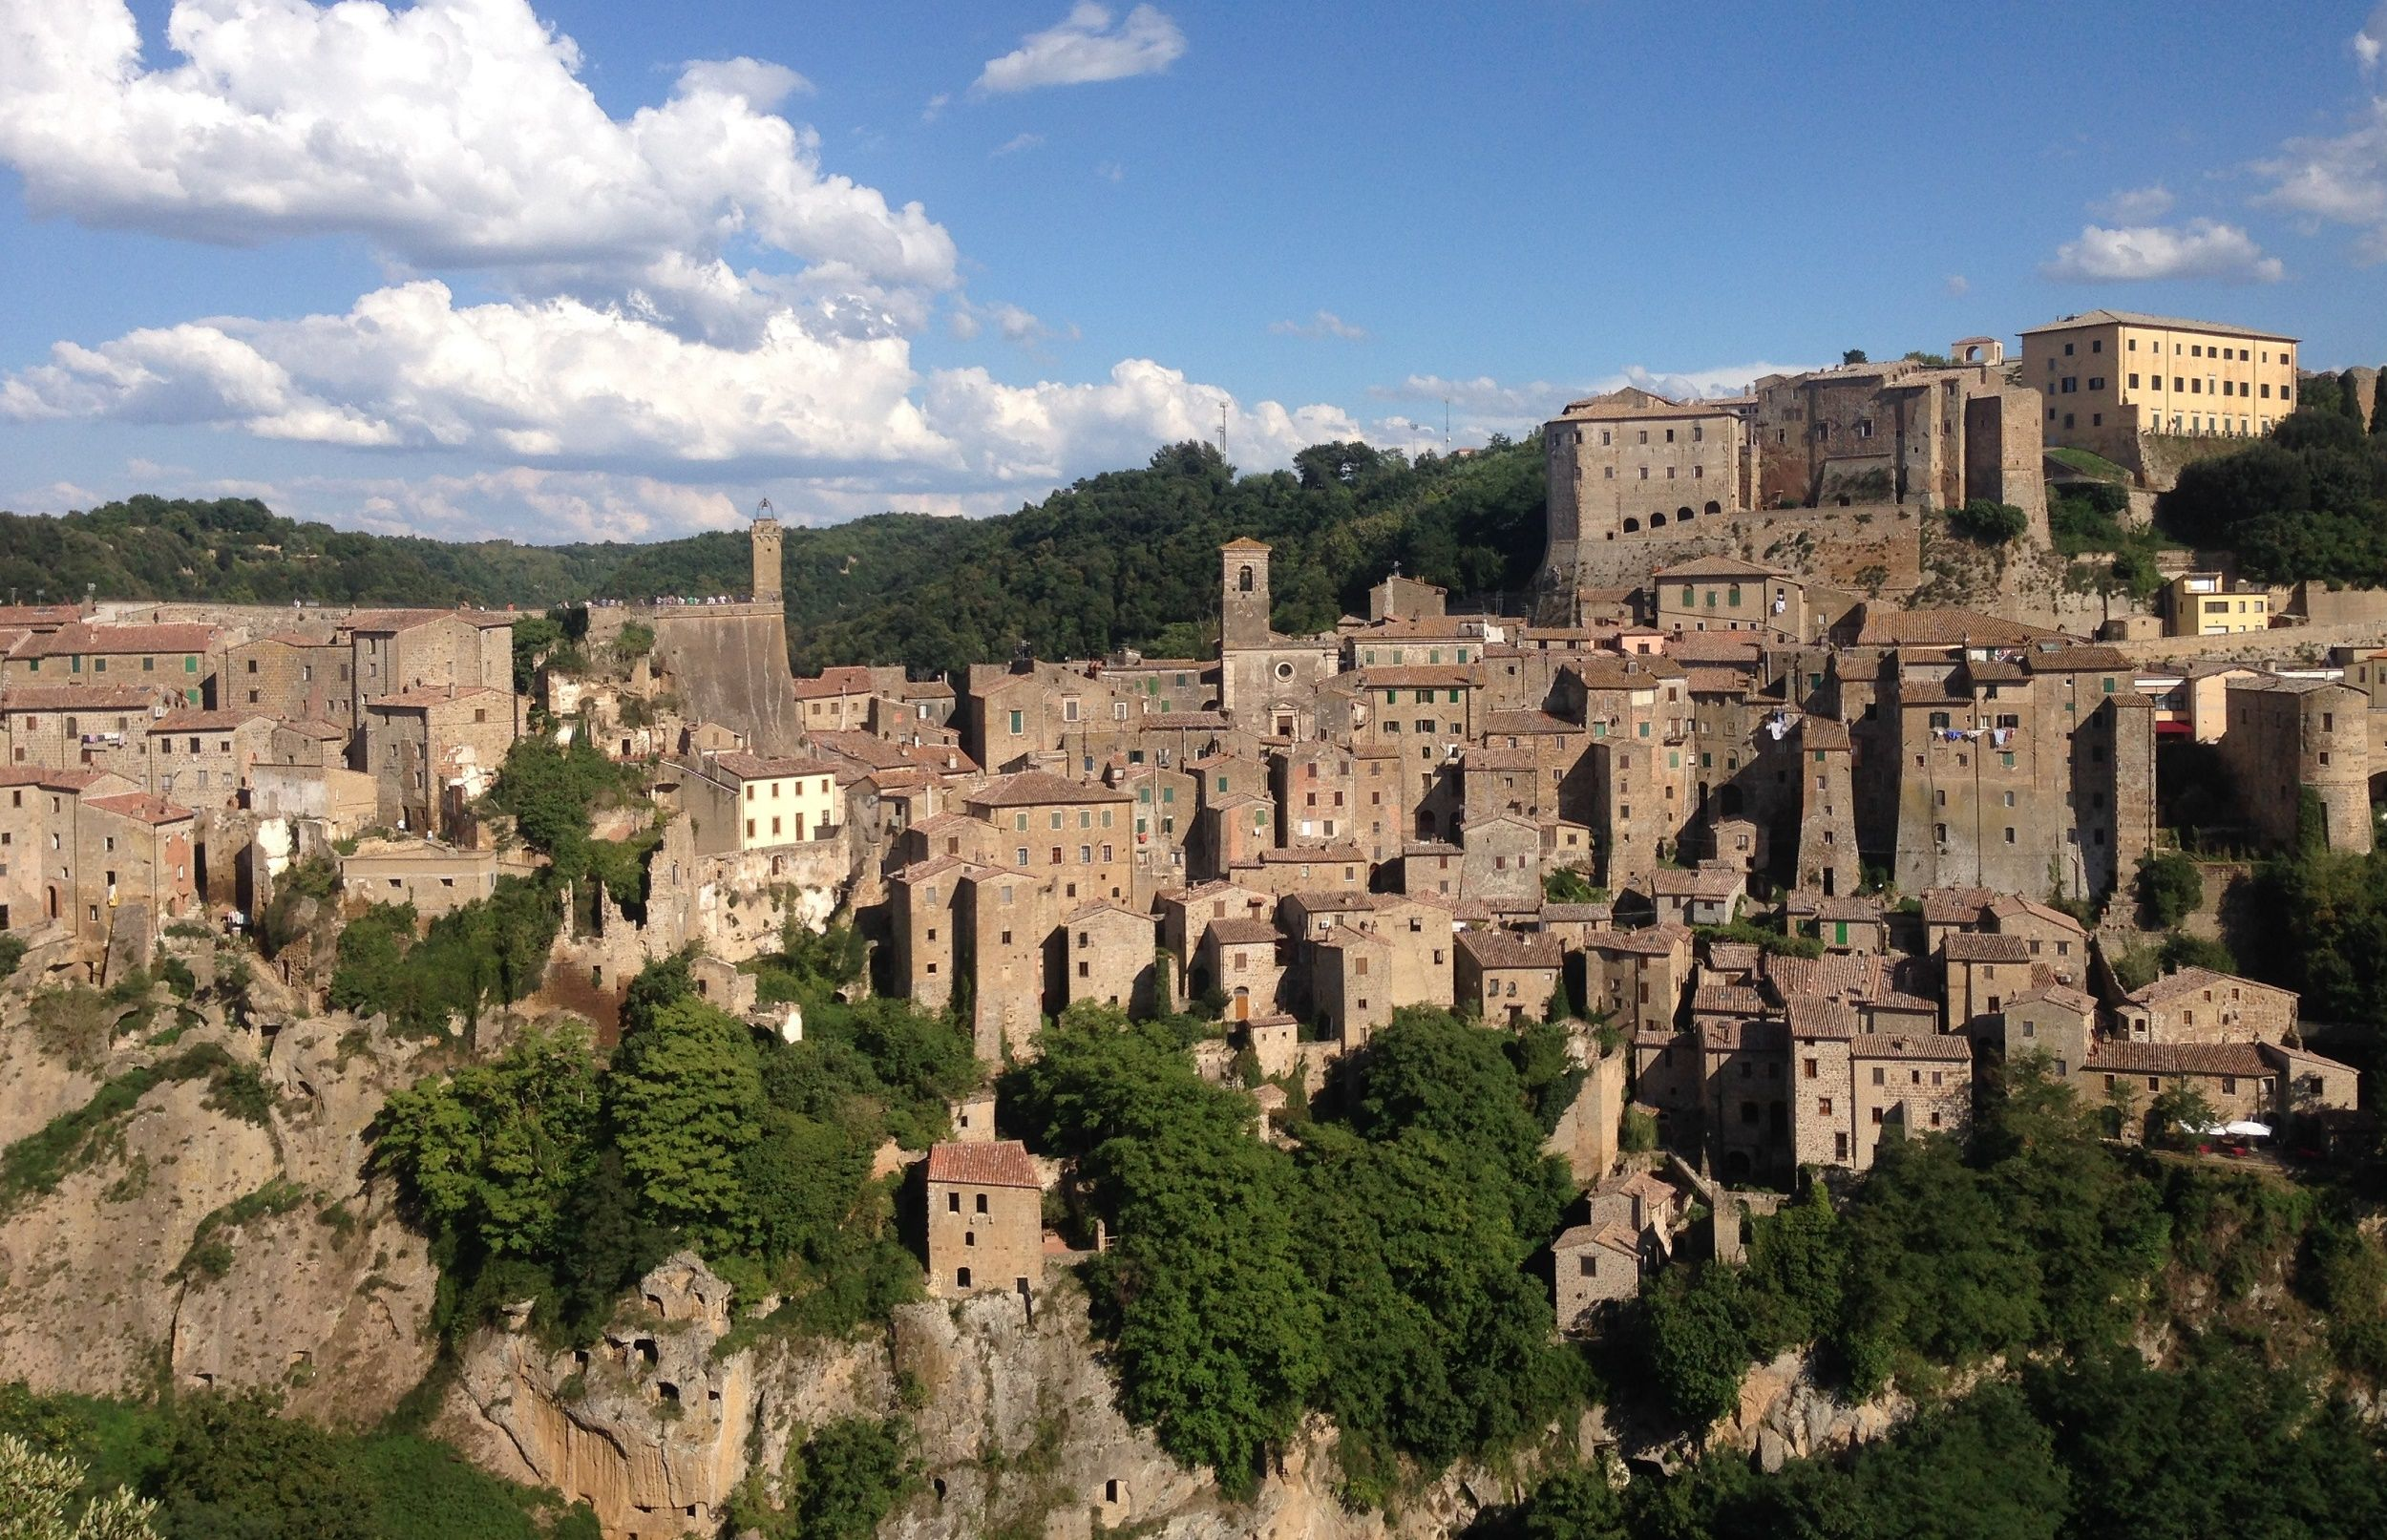 Sorano - Sorano and its territory: an open-air museum - Tuscany, Beautiful Everywhere